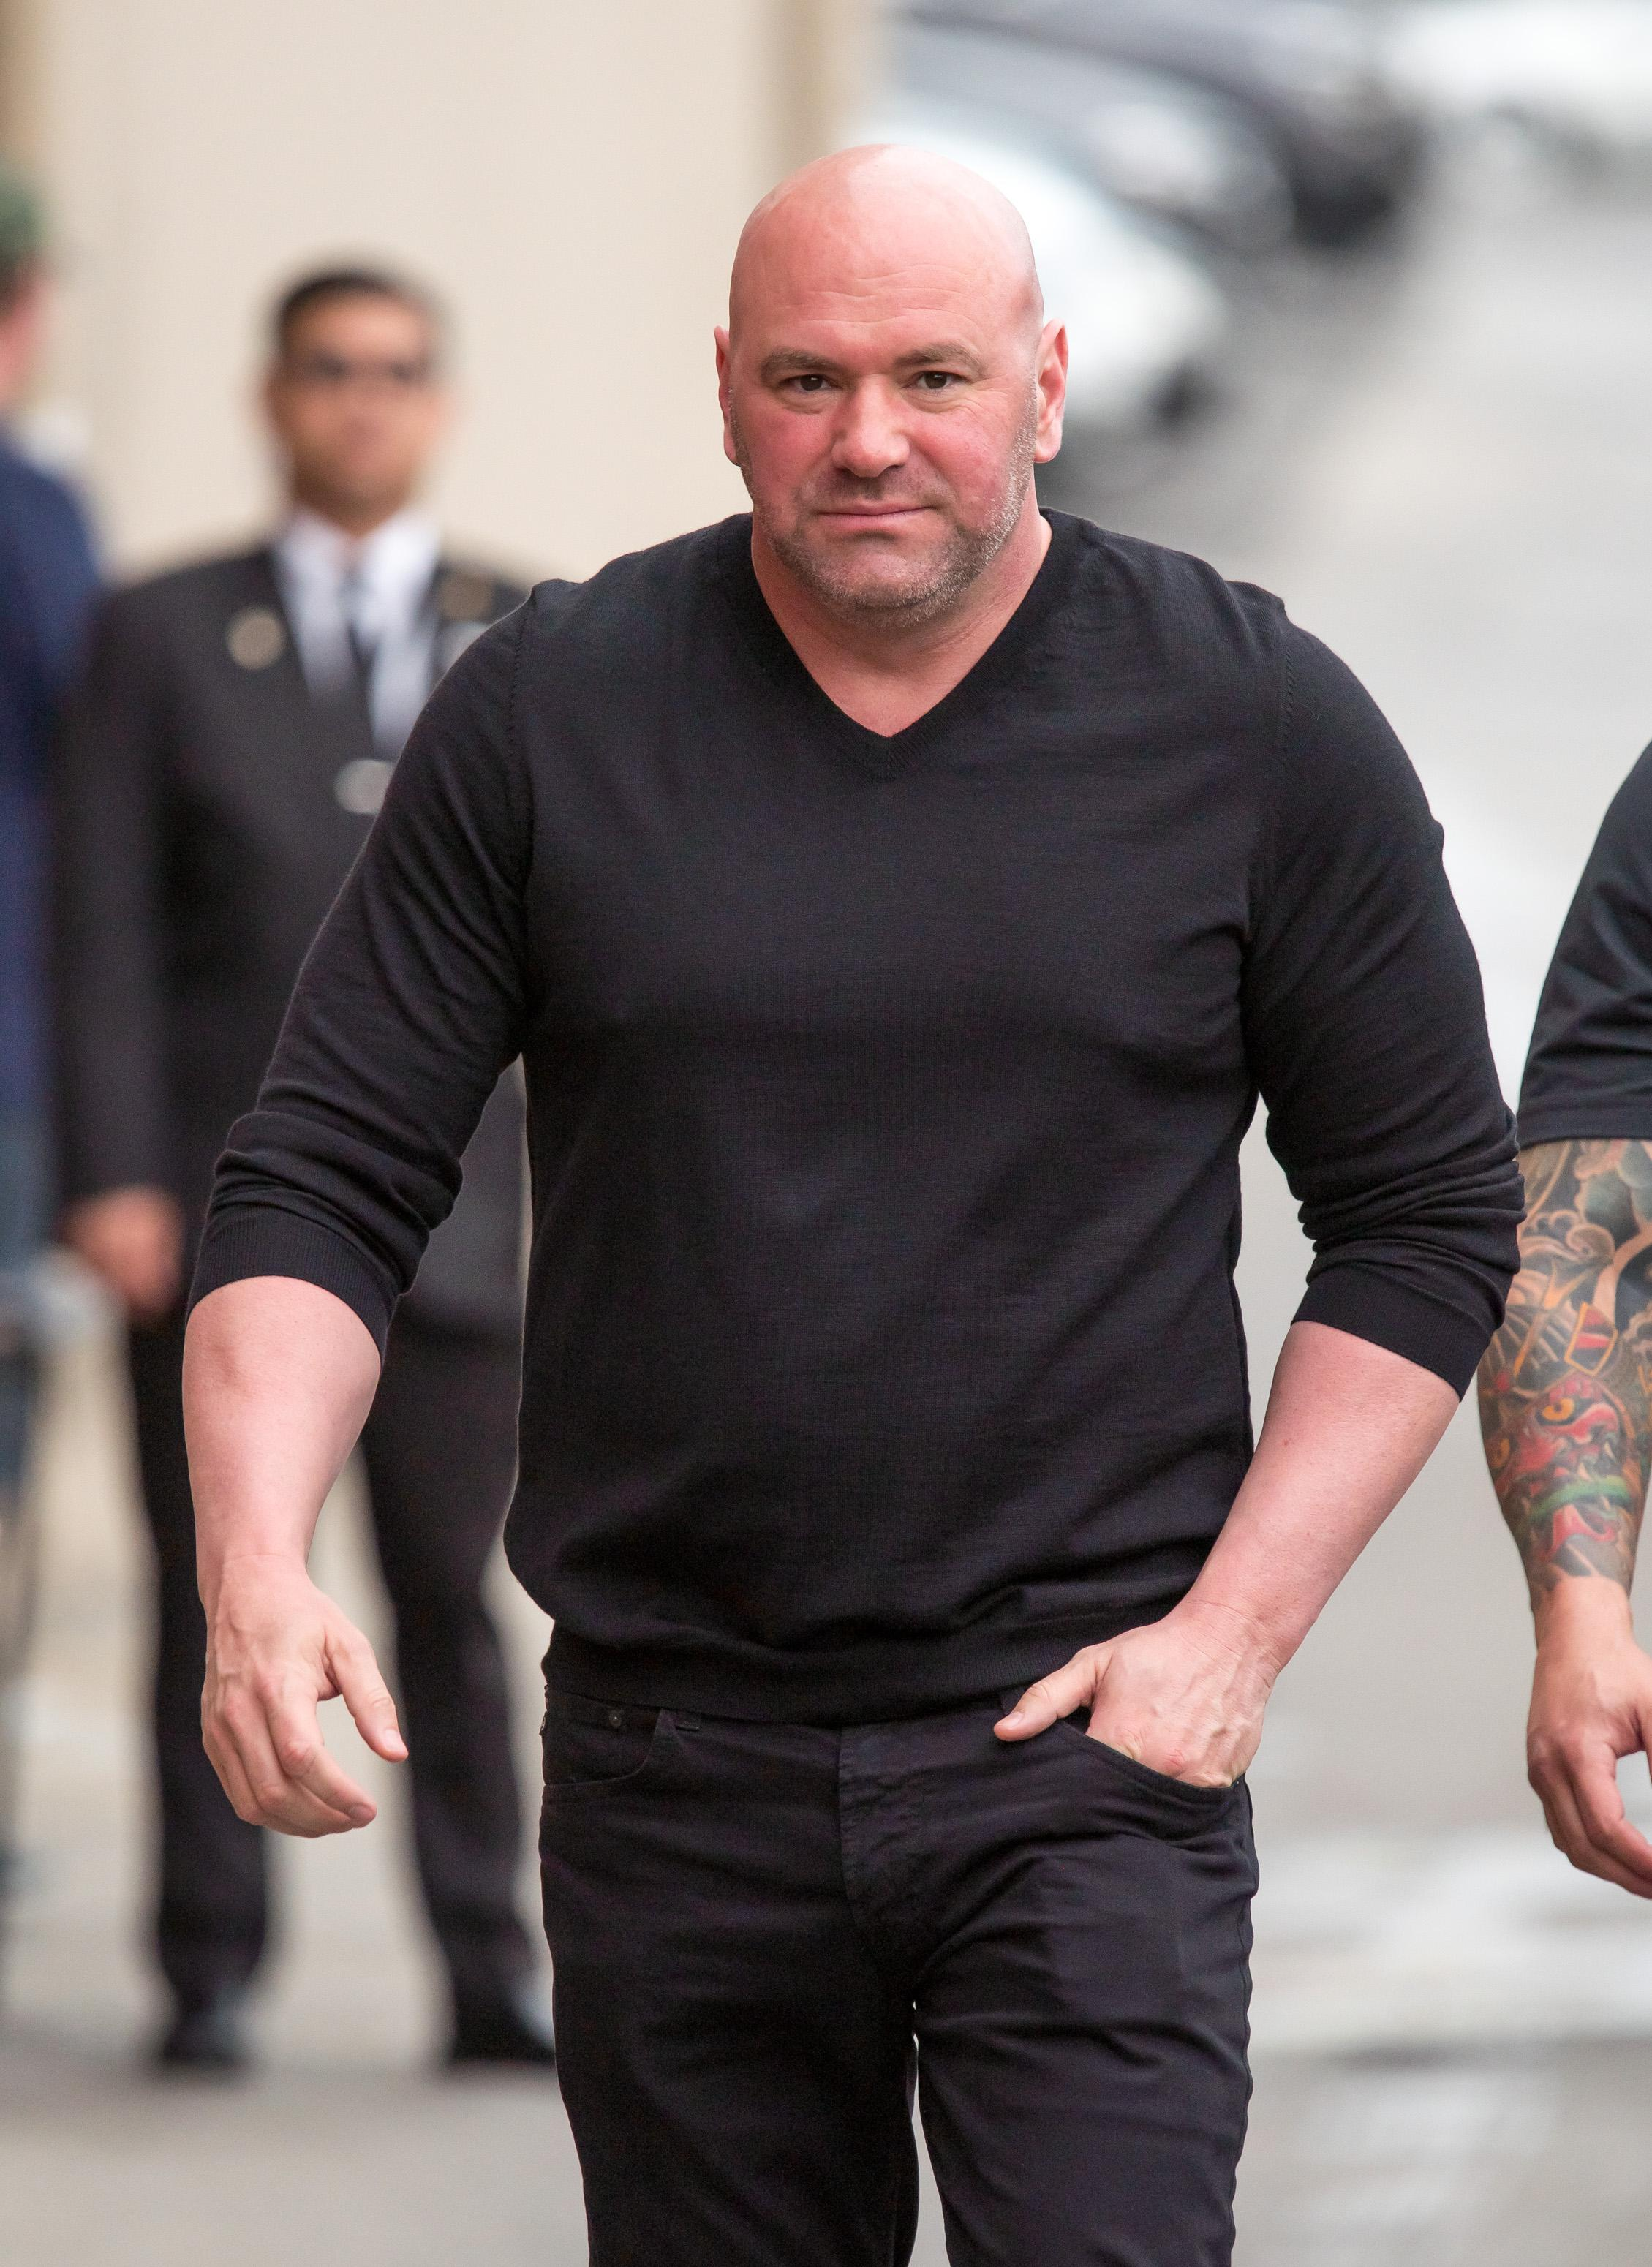 UFC president Dana White has revealed that McGregor is prepared to face anyone to fight Khabib again